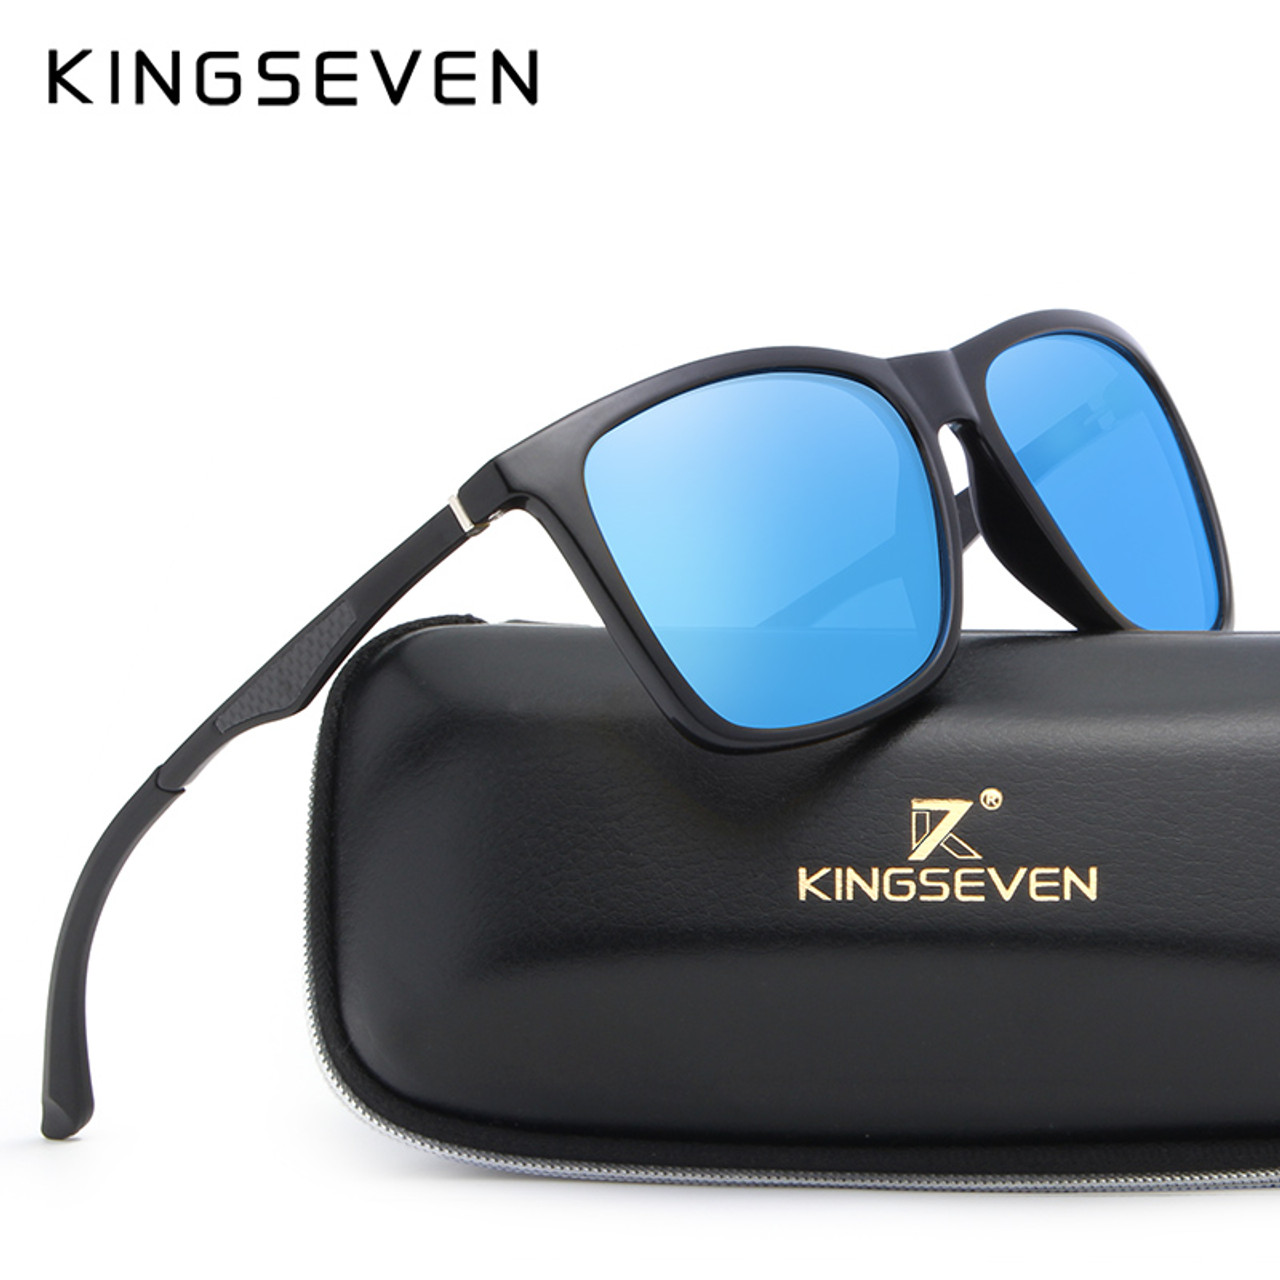 a5dfe8c6401 KINGSEVEN Aluminum Magnesium Men s Sunglasses Polarized Men Coating Mirror  Glasses oculos Male Eyewear Accessories For Men ...